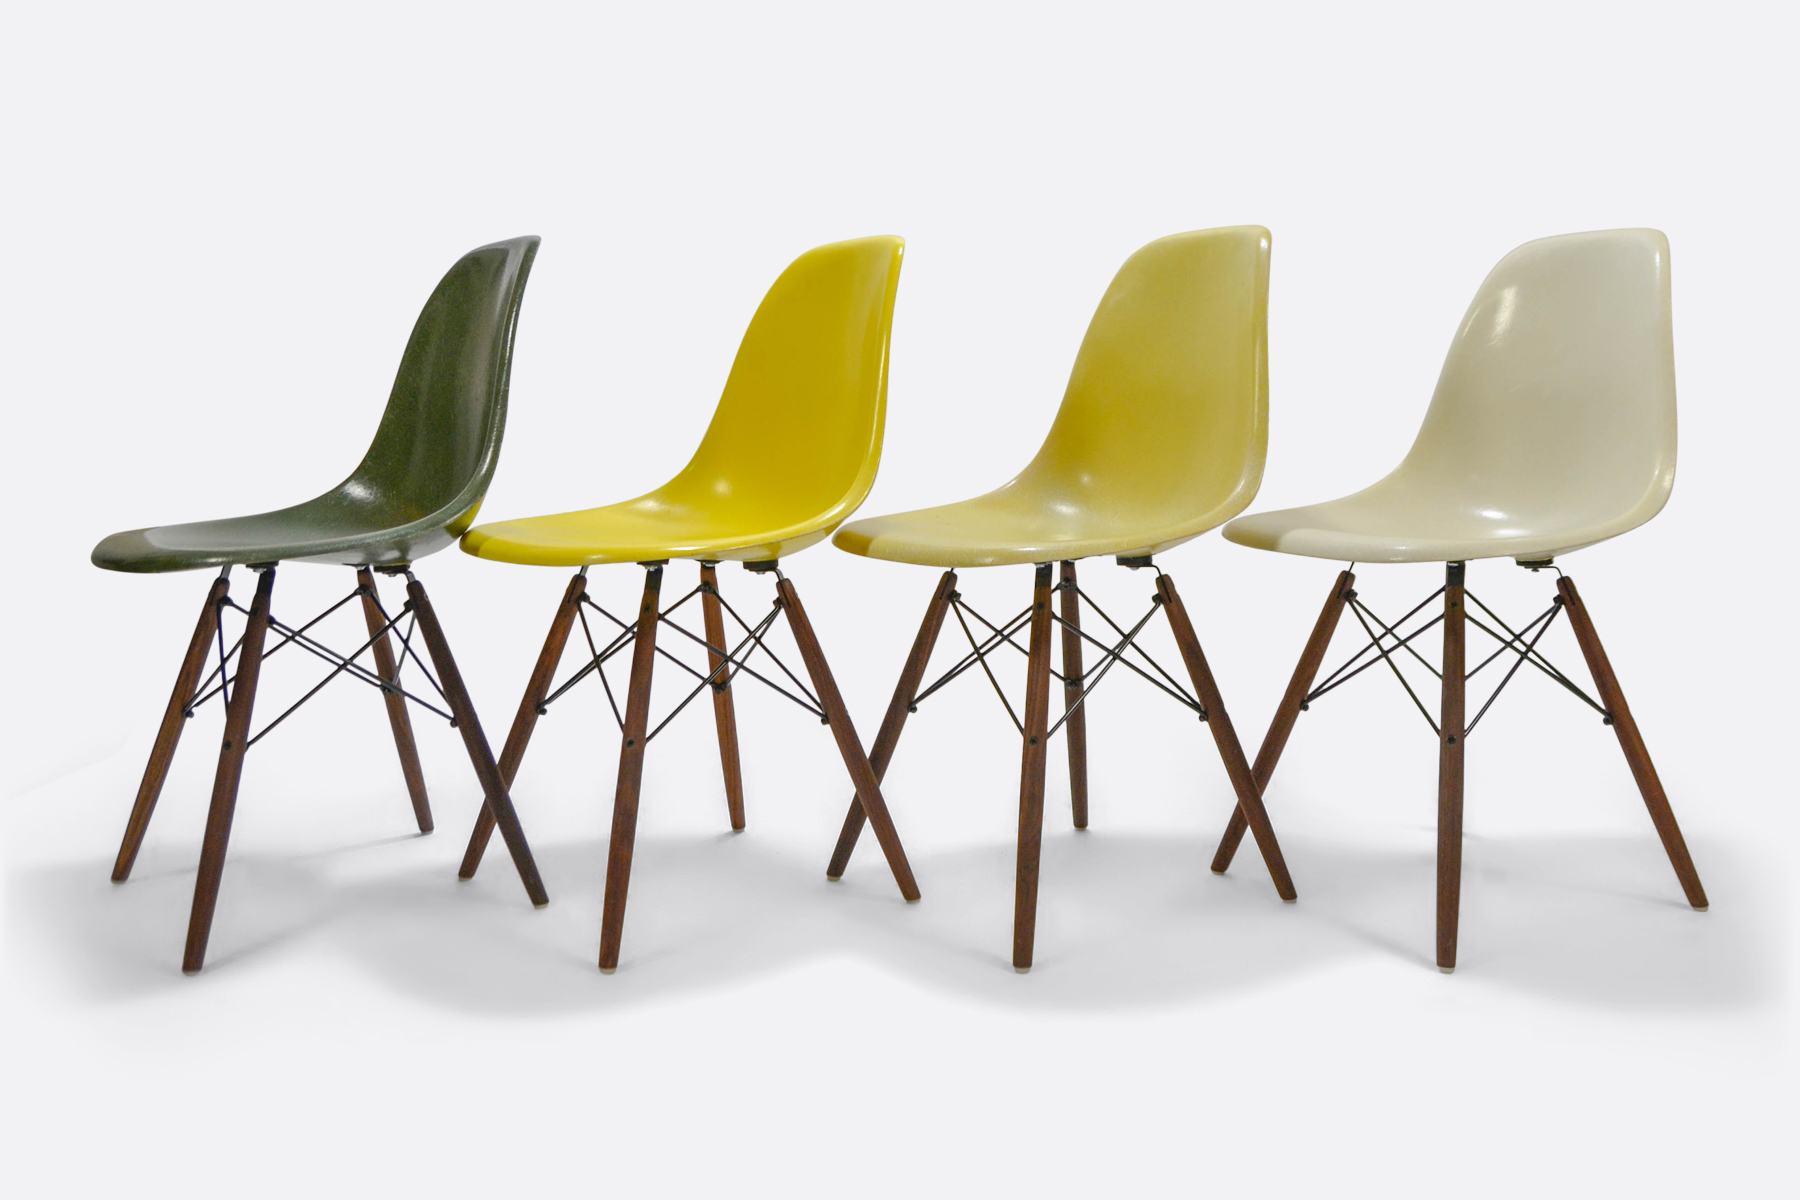 Eames DSW set of 4 Forest Green - Canary Yellow - Lemon Yellow - Off White4